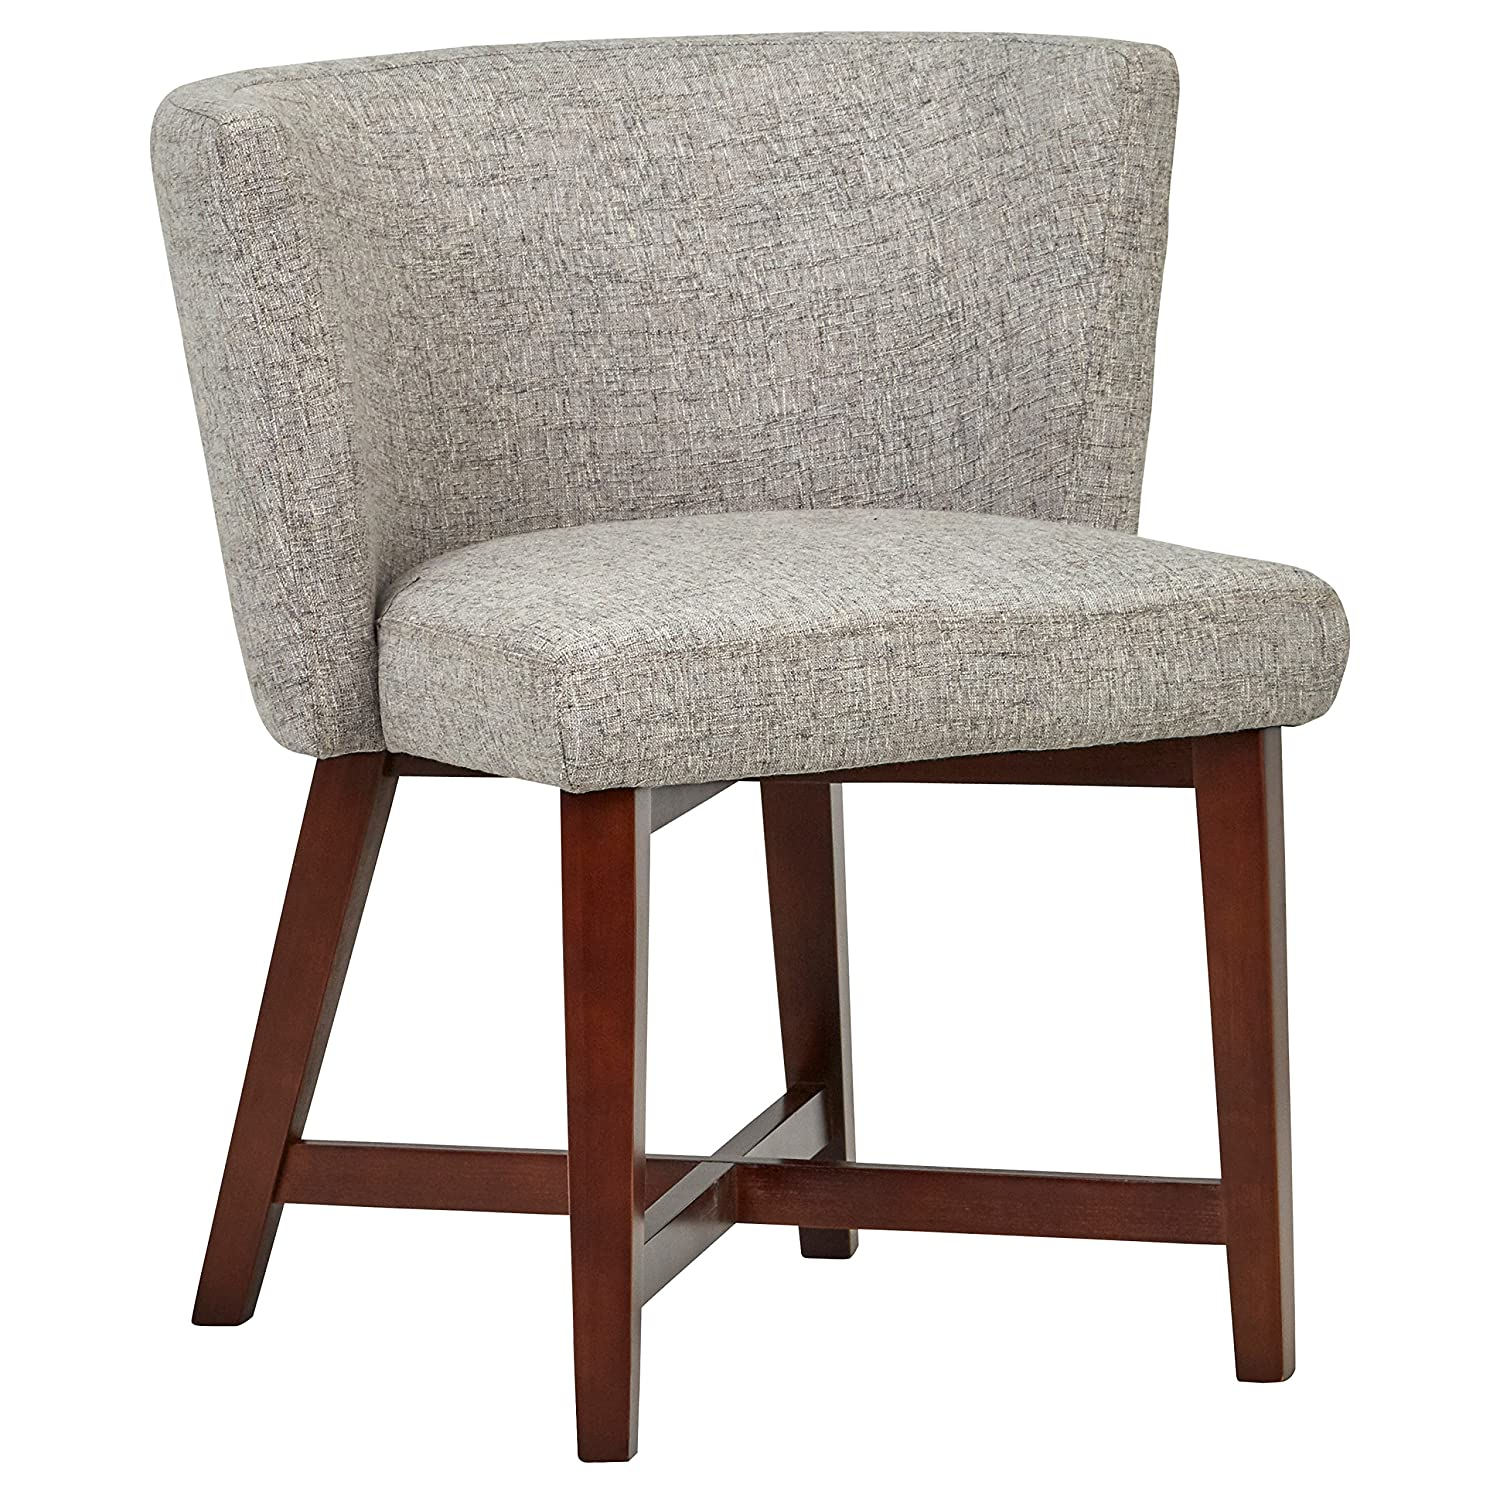 Rivet Intersection Mid-Century Modern Curved Back Accent Dining Room Kitchen Chair, 29.9 Inch Height, Light Grey, Wood